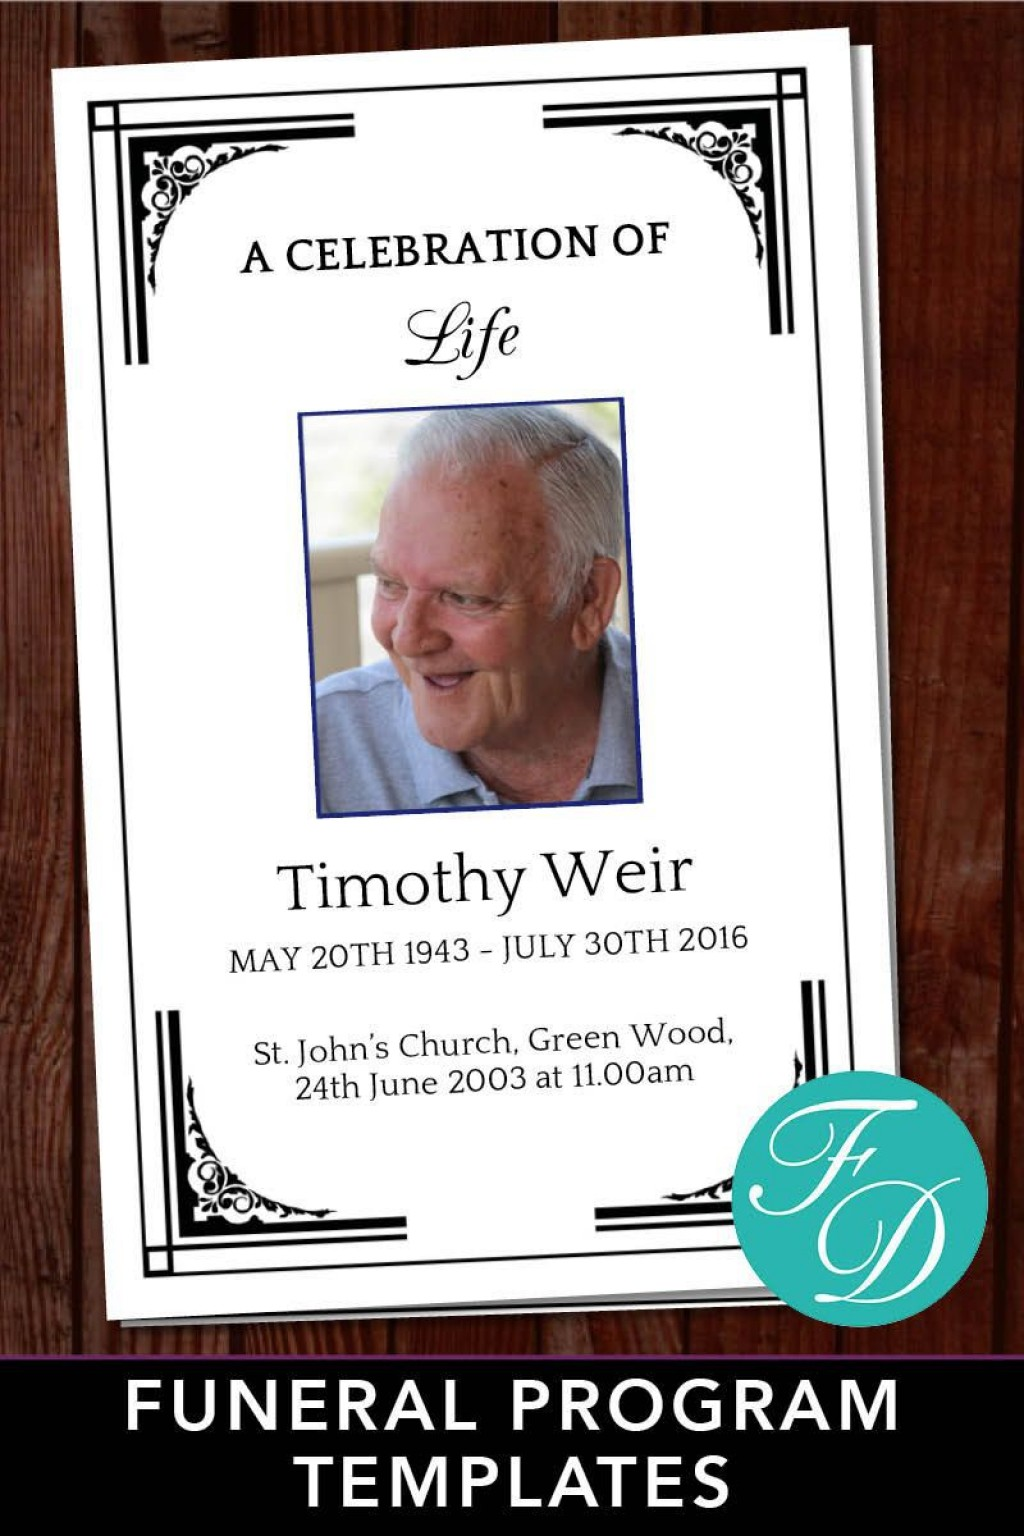 003 Astounding Free Celebration Of Life Program Template Download Concept Large